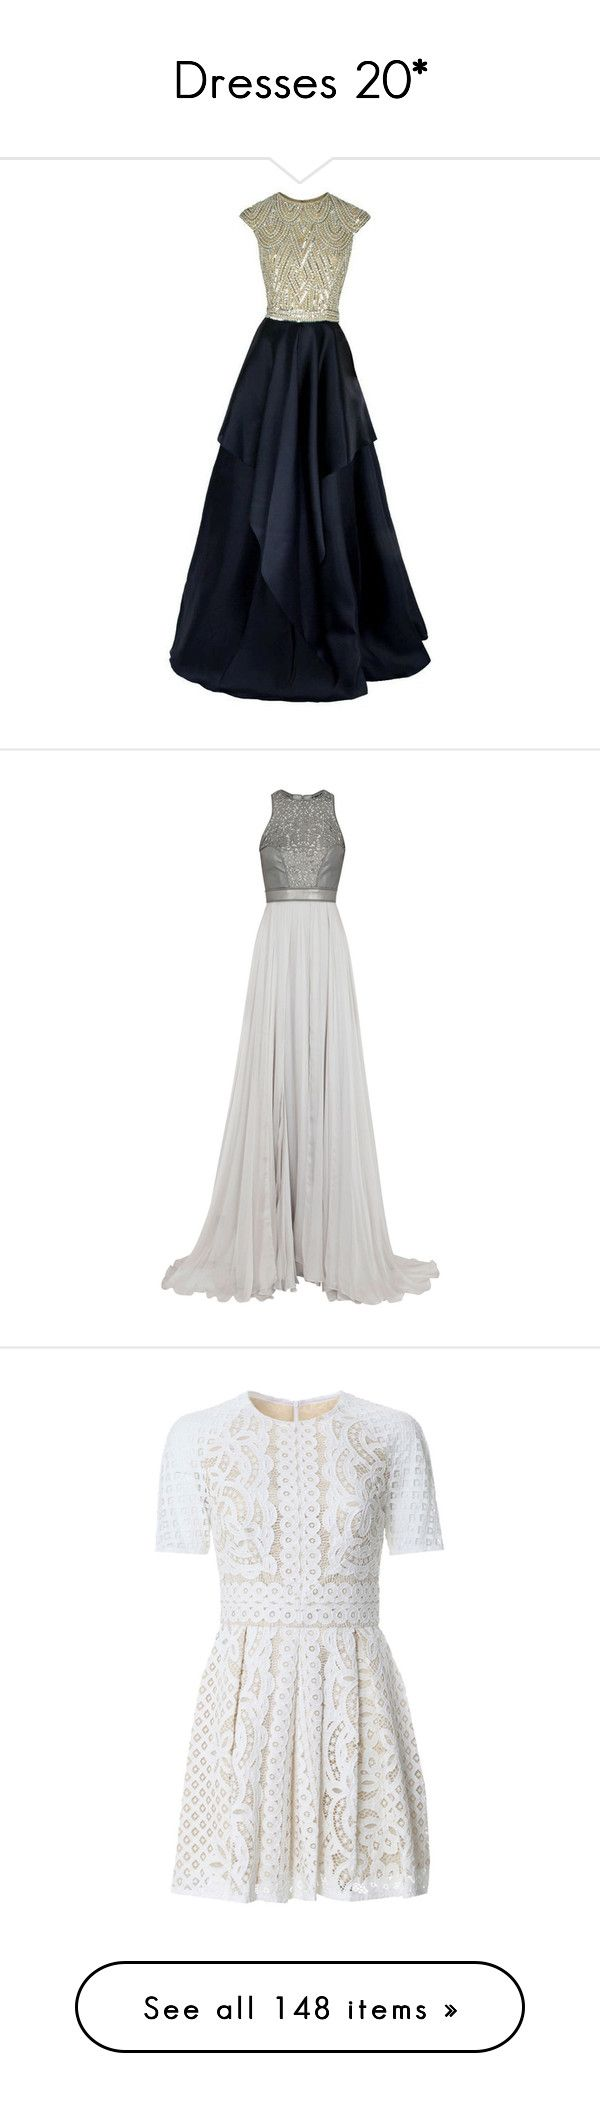 """""""Dresses 20*"""" by manditalove ❤ liked on Polyvore featuring dresses, gowns, long dresses, silver evening dresses, silk gown, navy gown, navy blue evening gown, navy blue gown, vestidos and long pleated dress"""